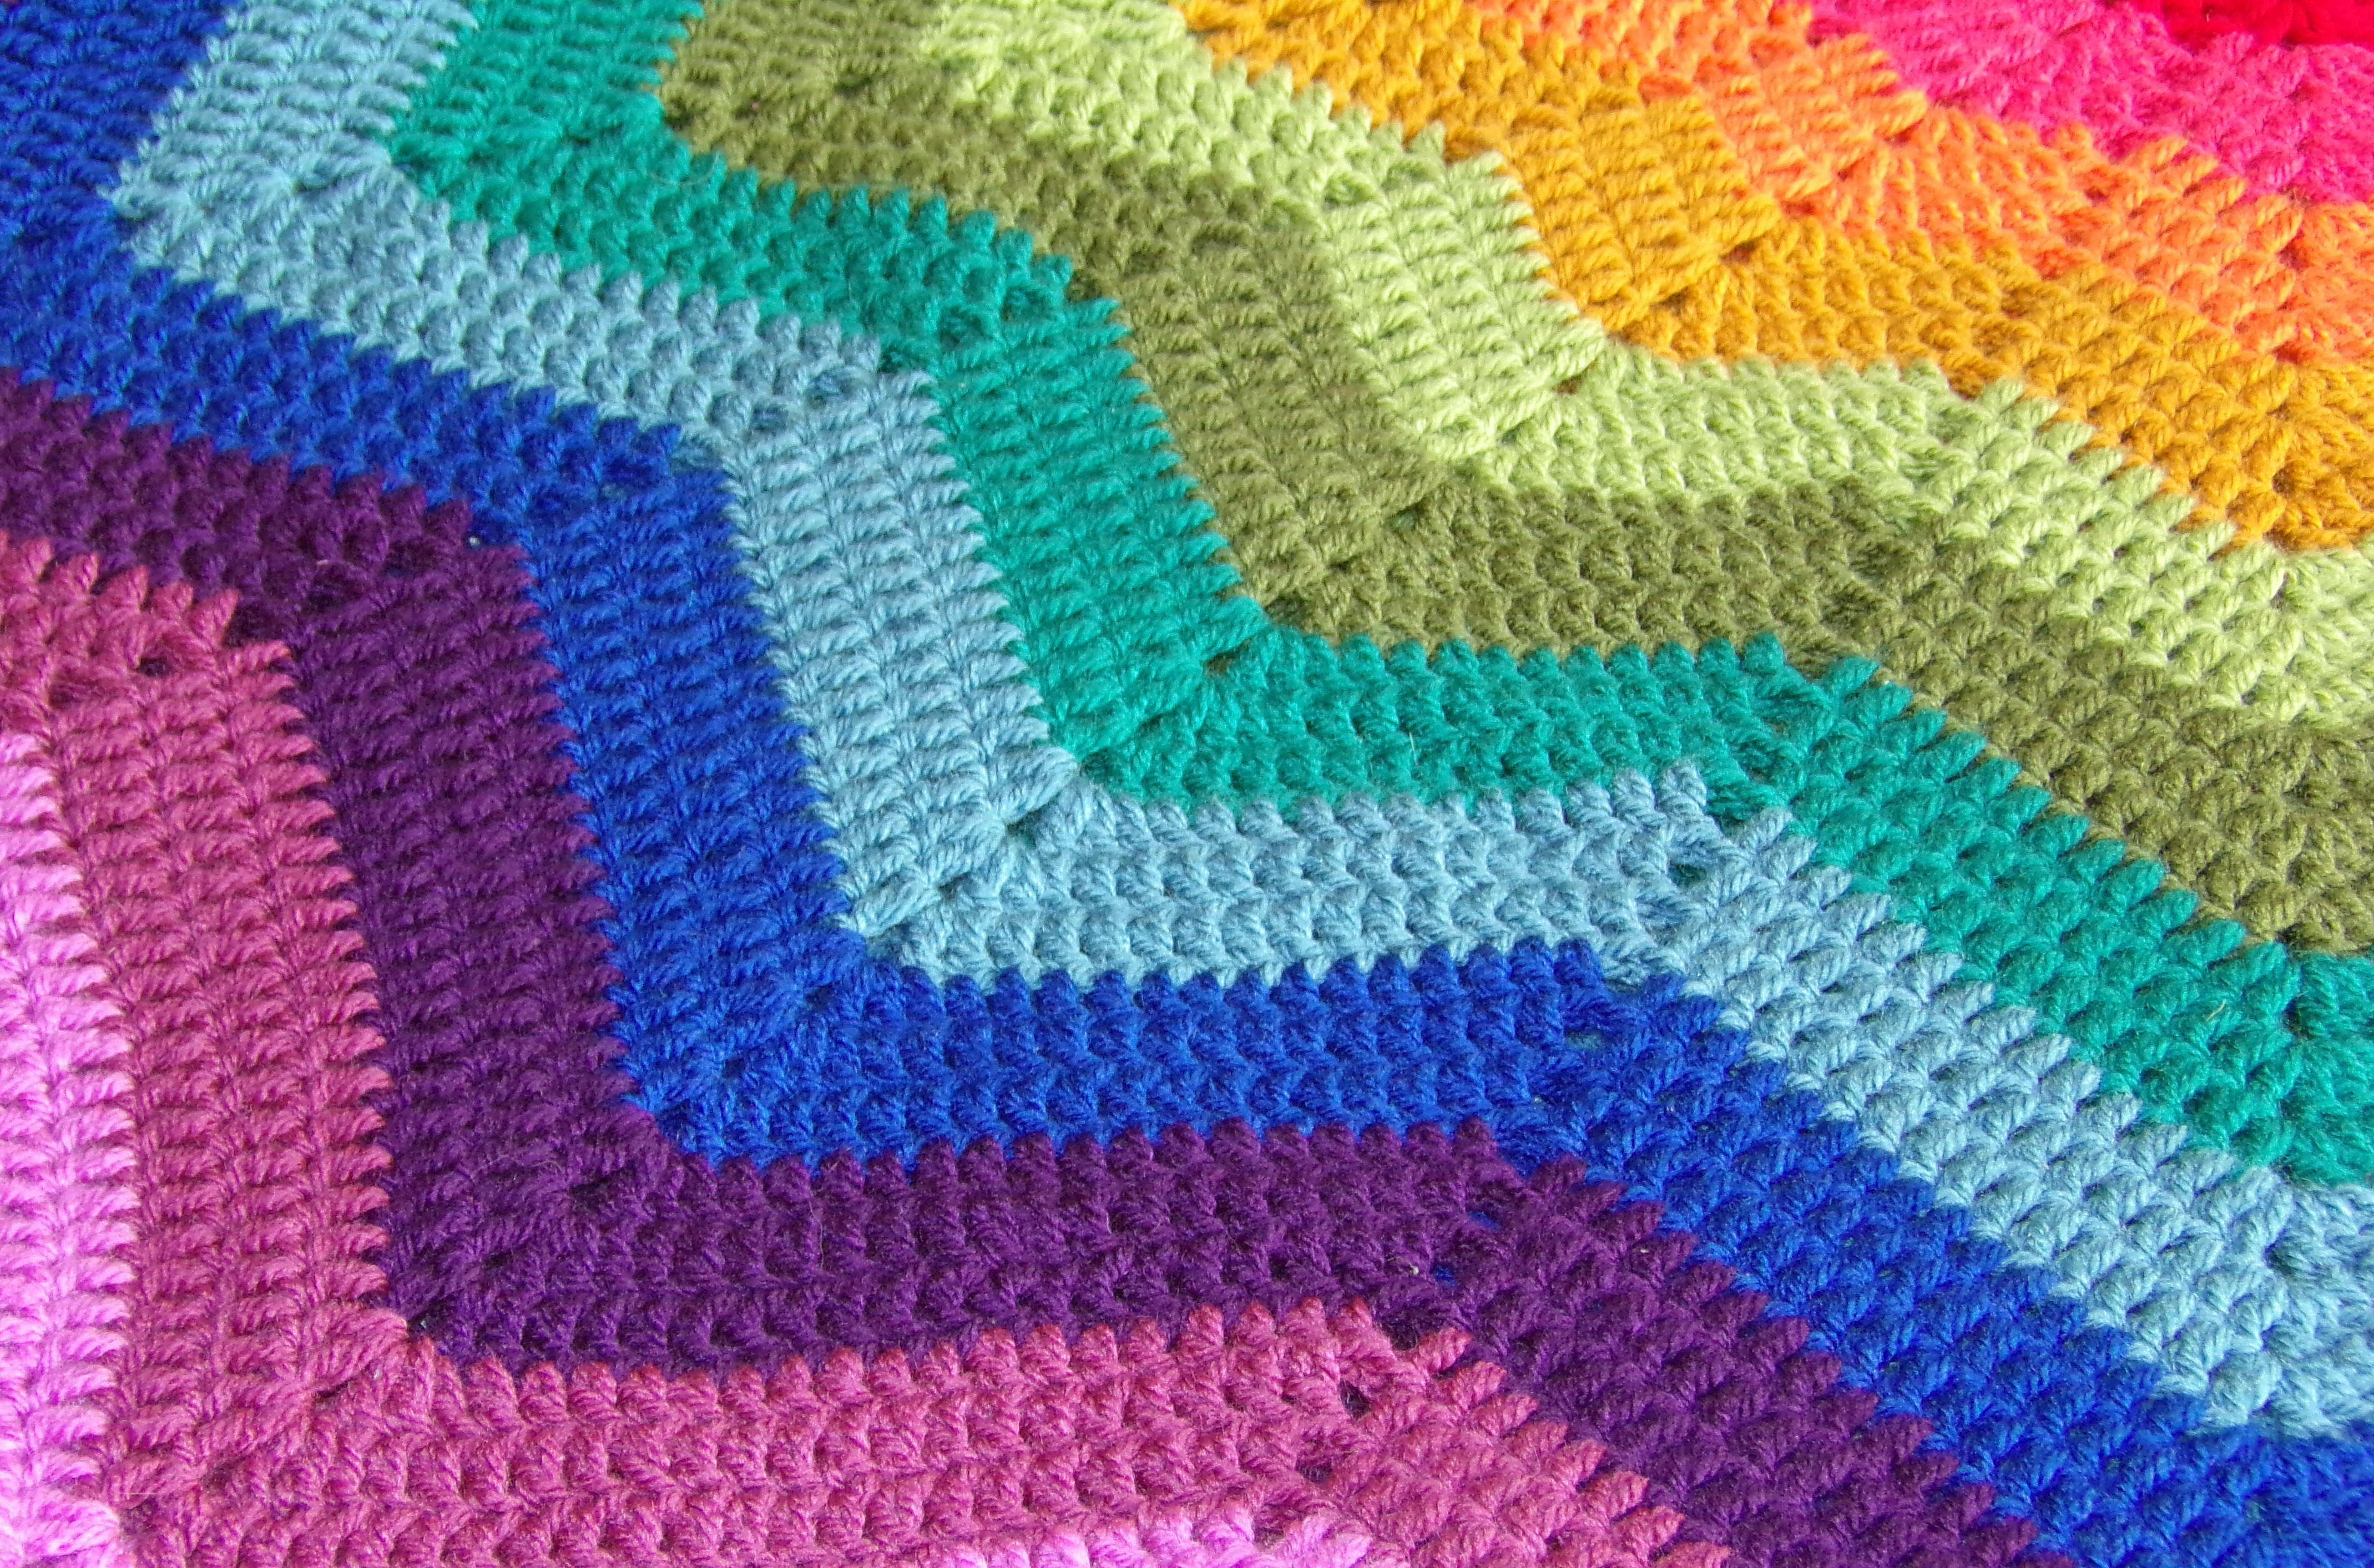 Crocheted rainbow ripple star blanket in all its